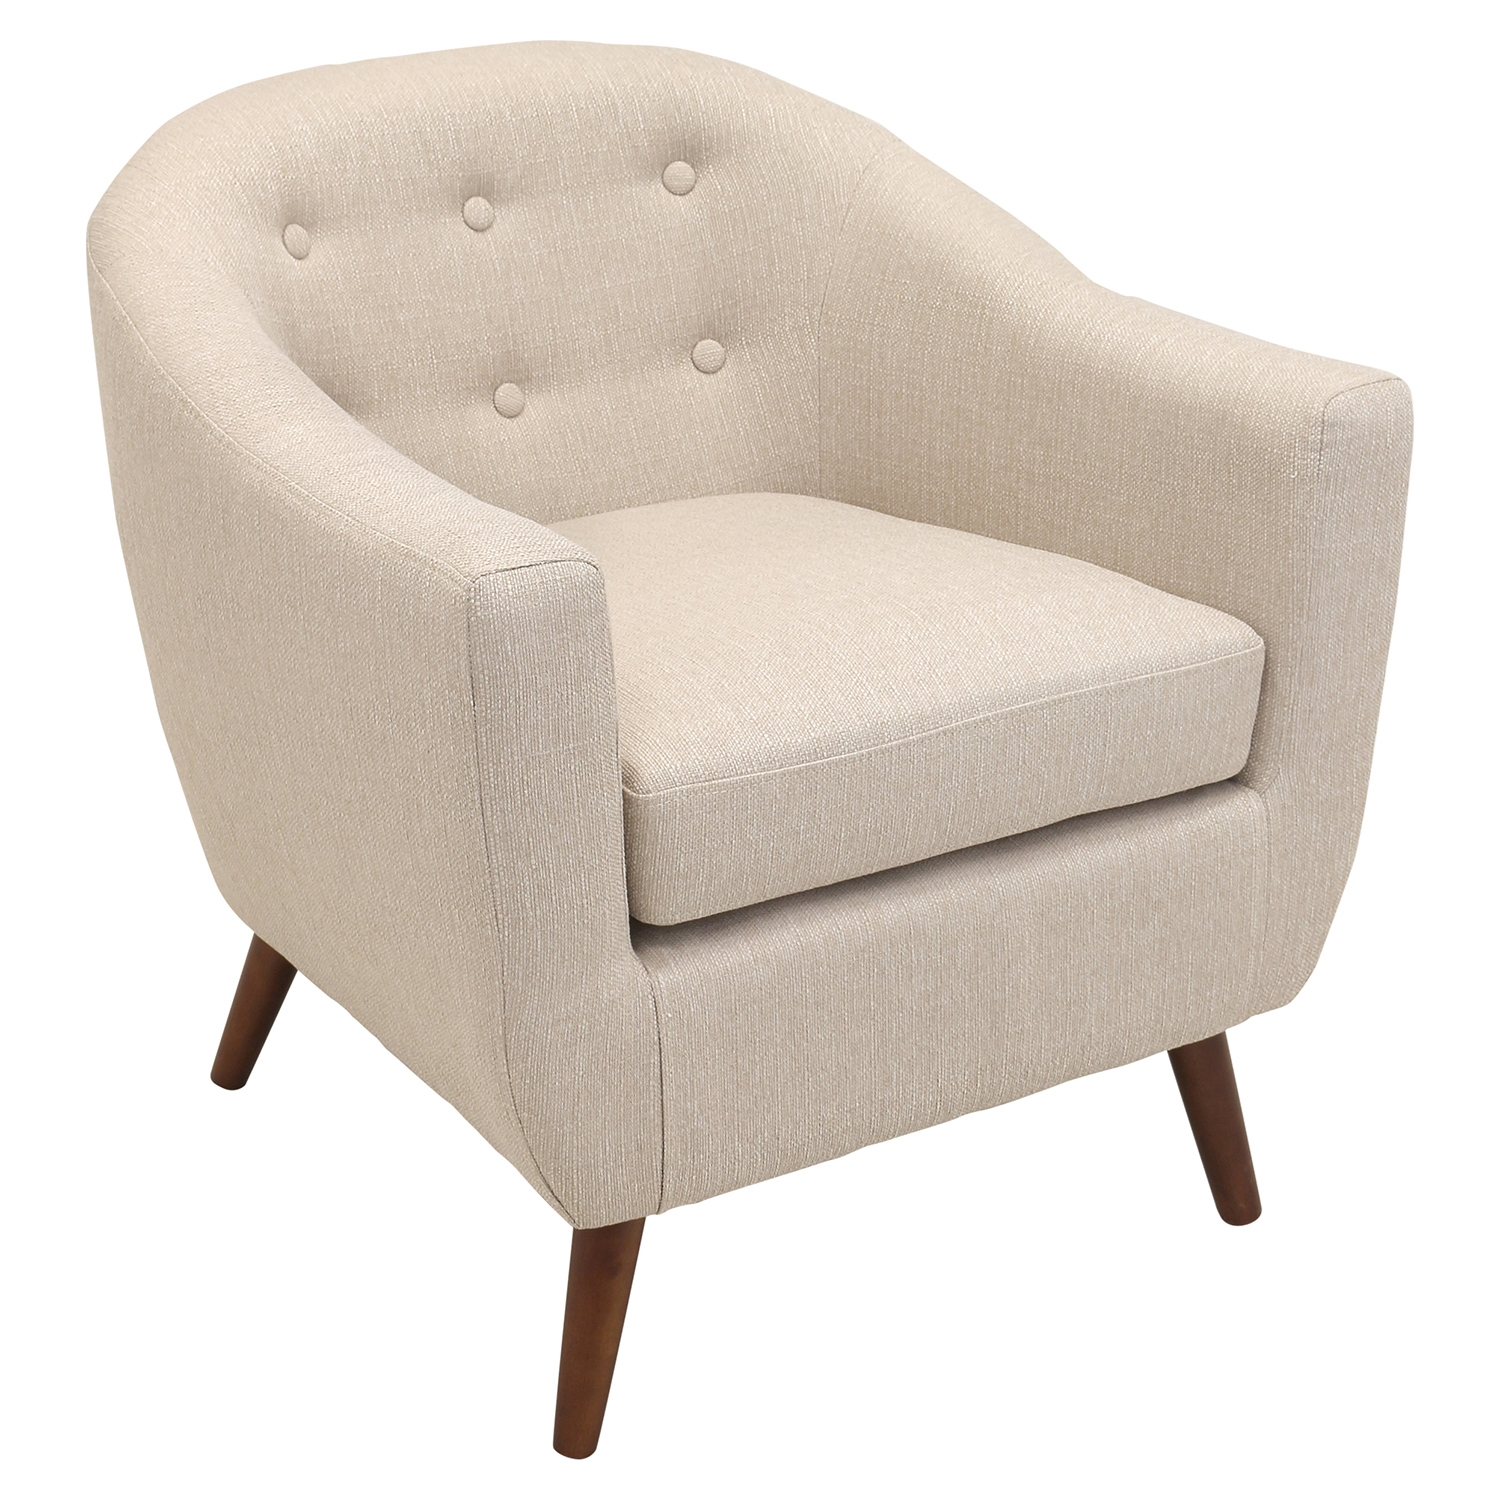 Rockwell Upholstery Armchair - Button Tufted, Cream - LMS-CHR-RKWL-CR